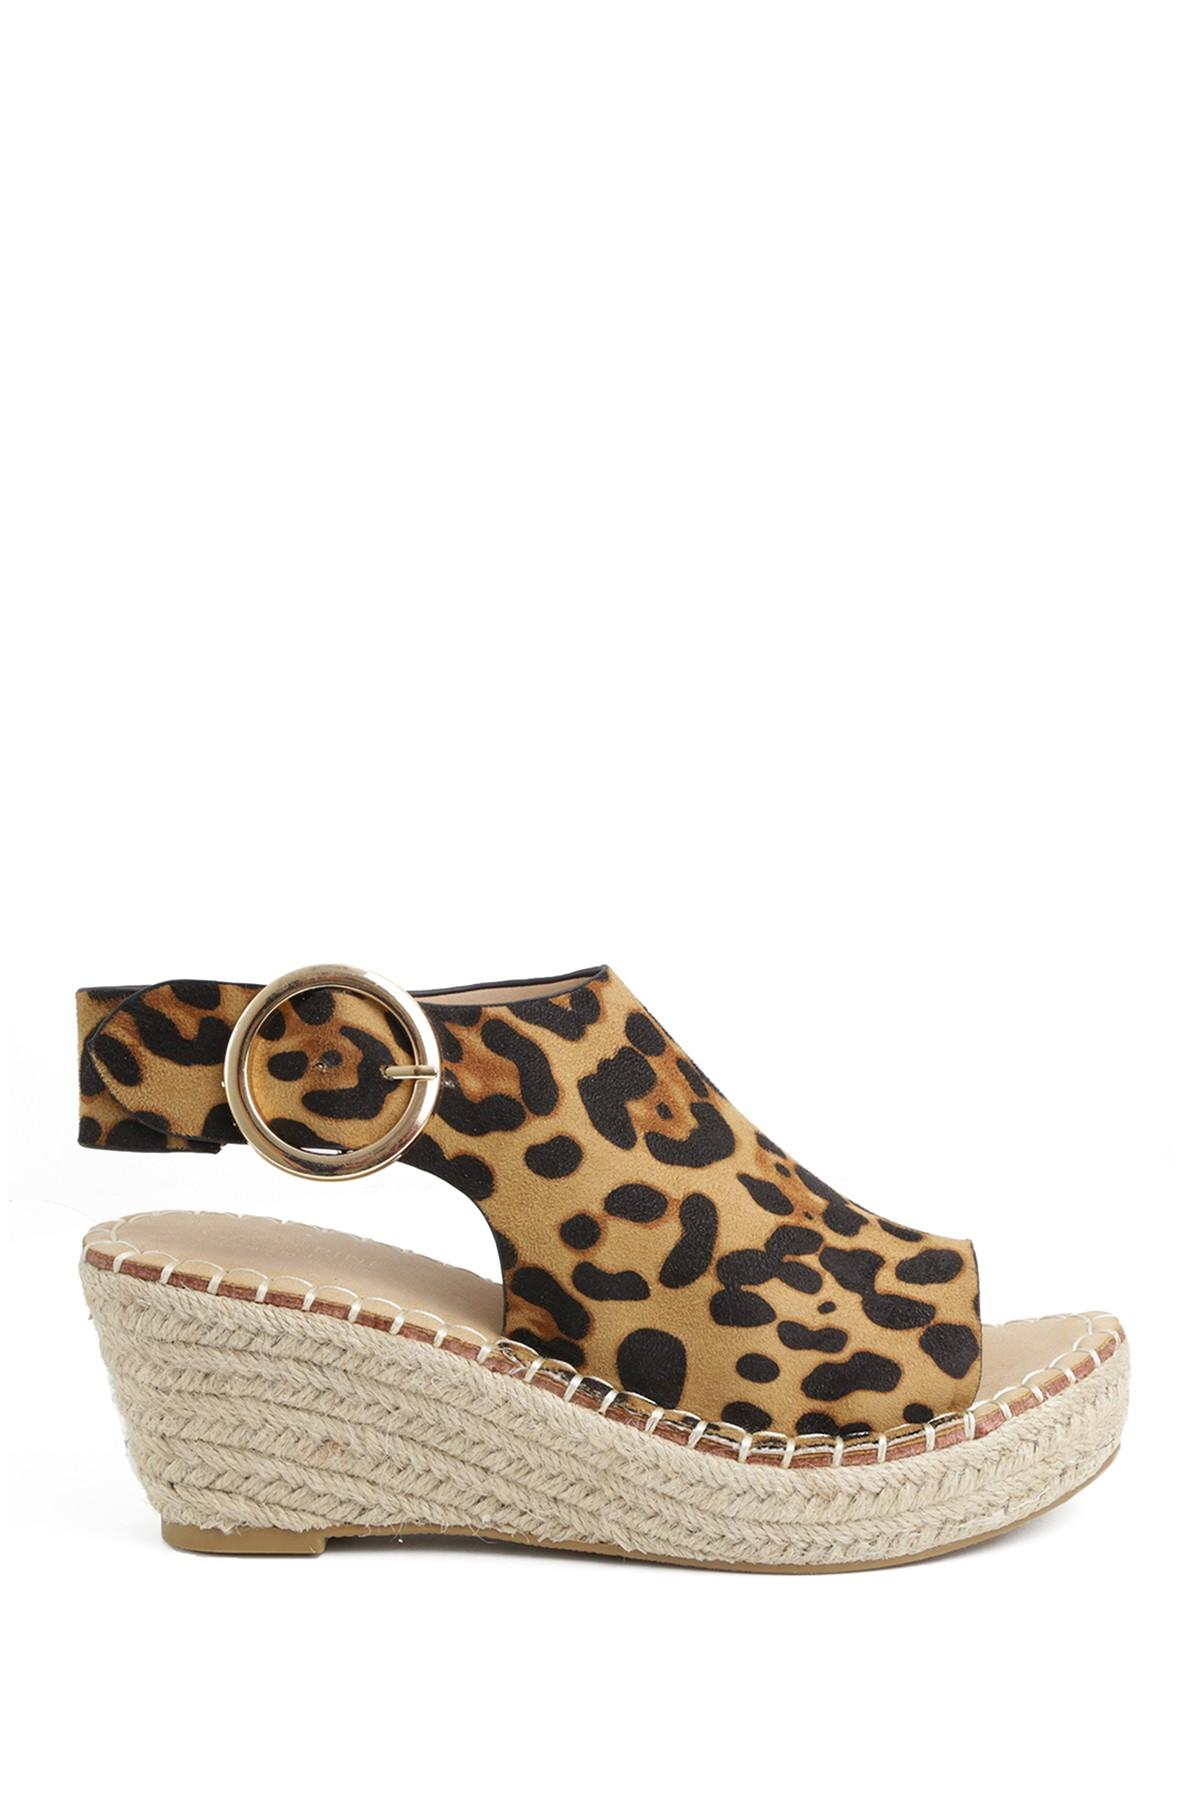 cheapest price great prices get new Catherine Malandrino Cirkly Espadrille Wedge Sandal in Leopard ul ...